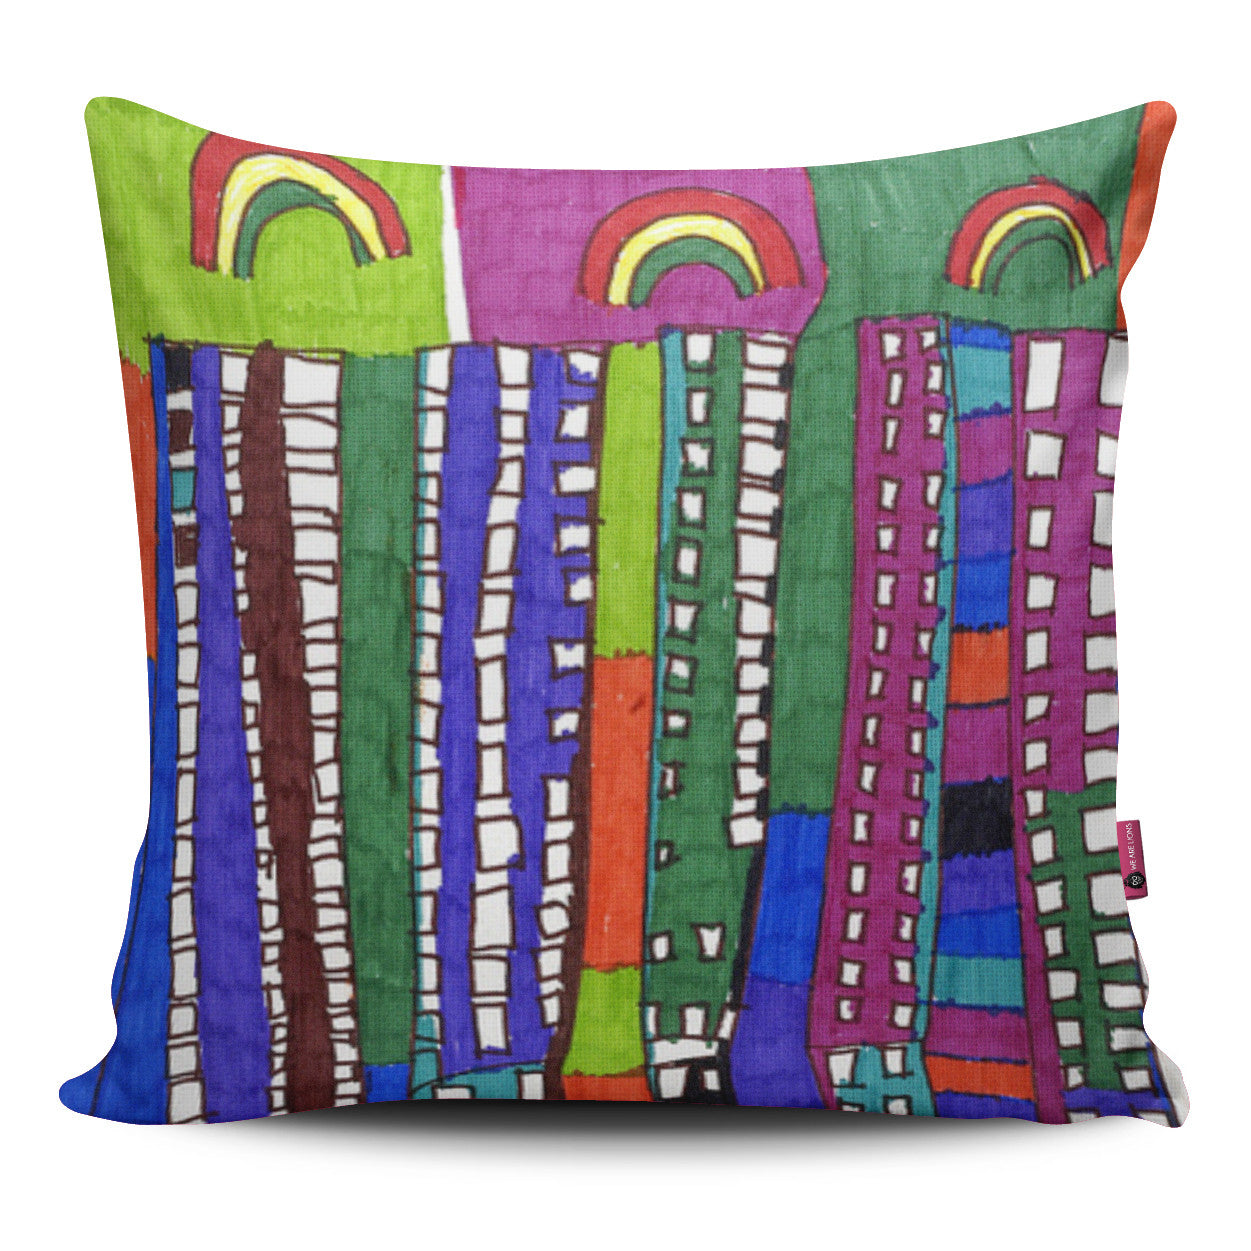 Rainbows Pillow